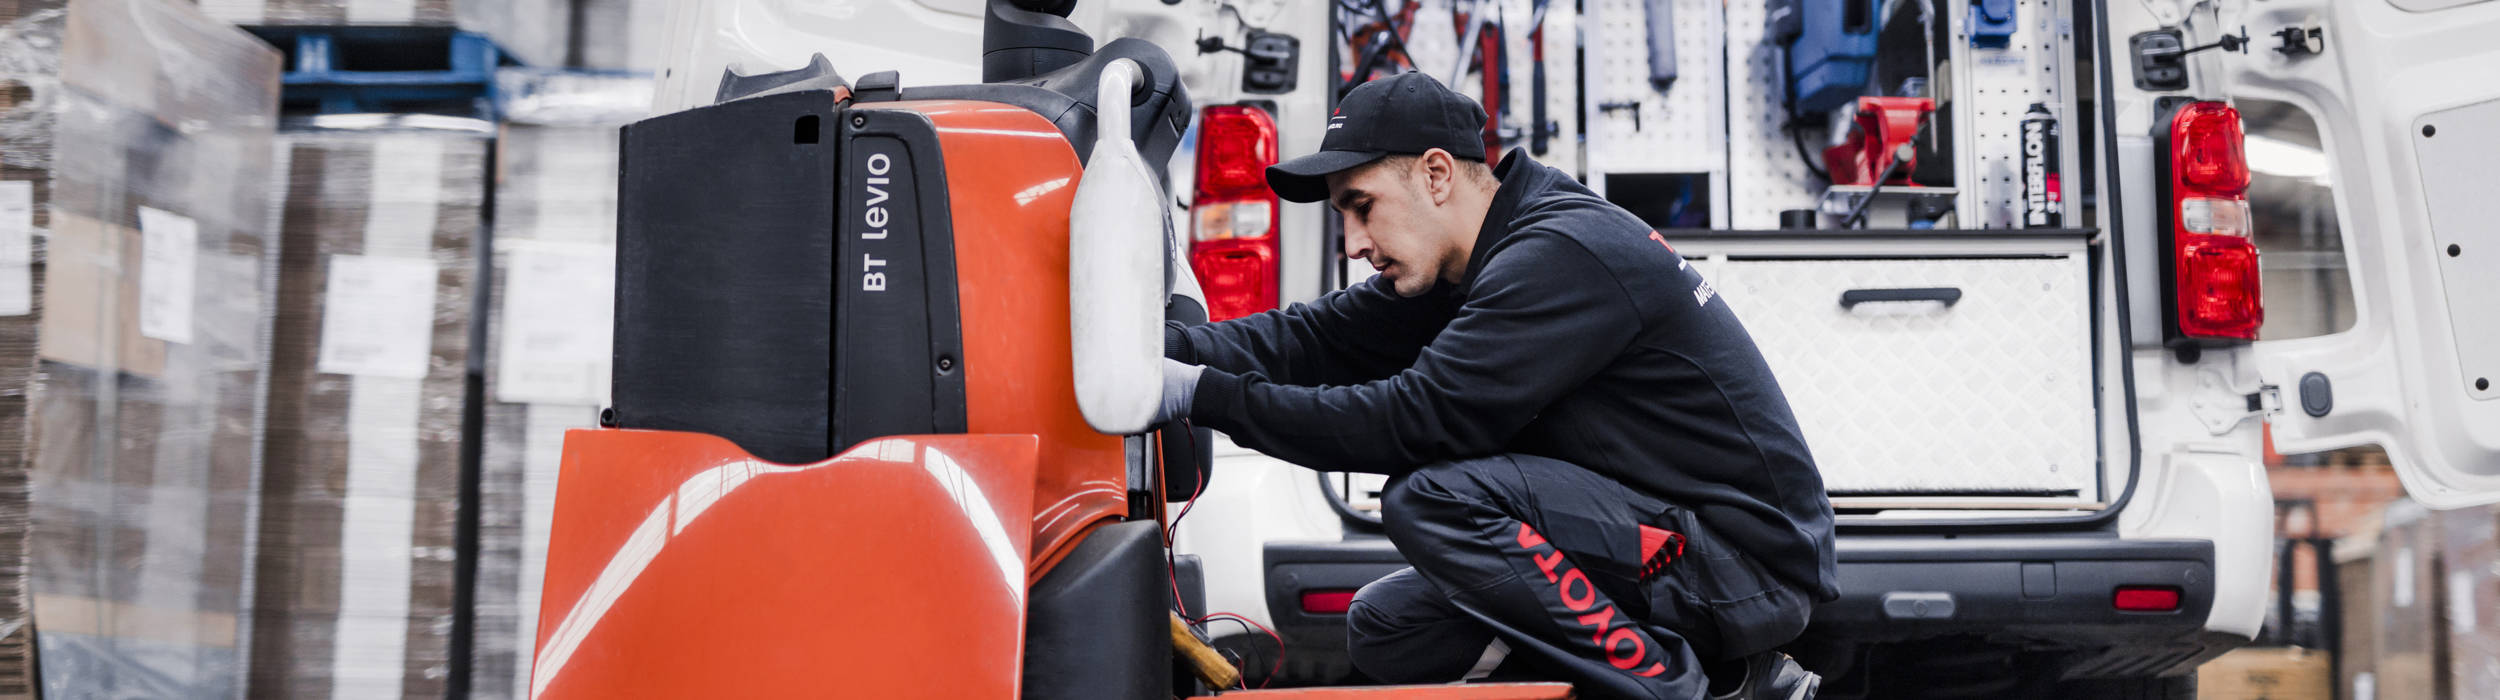 Toyota service technician maintaing a powered pallet truck